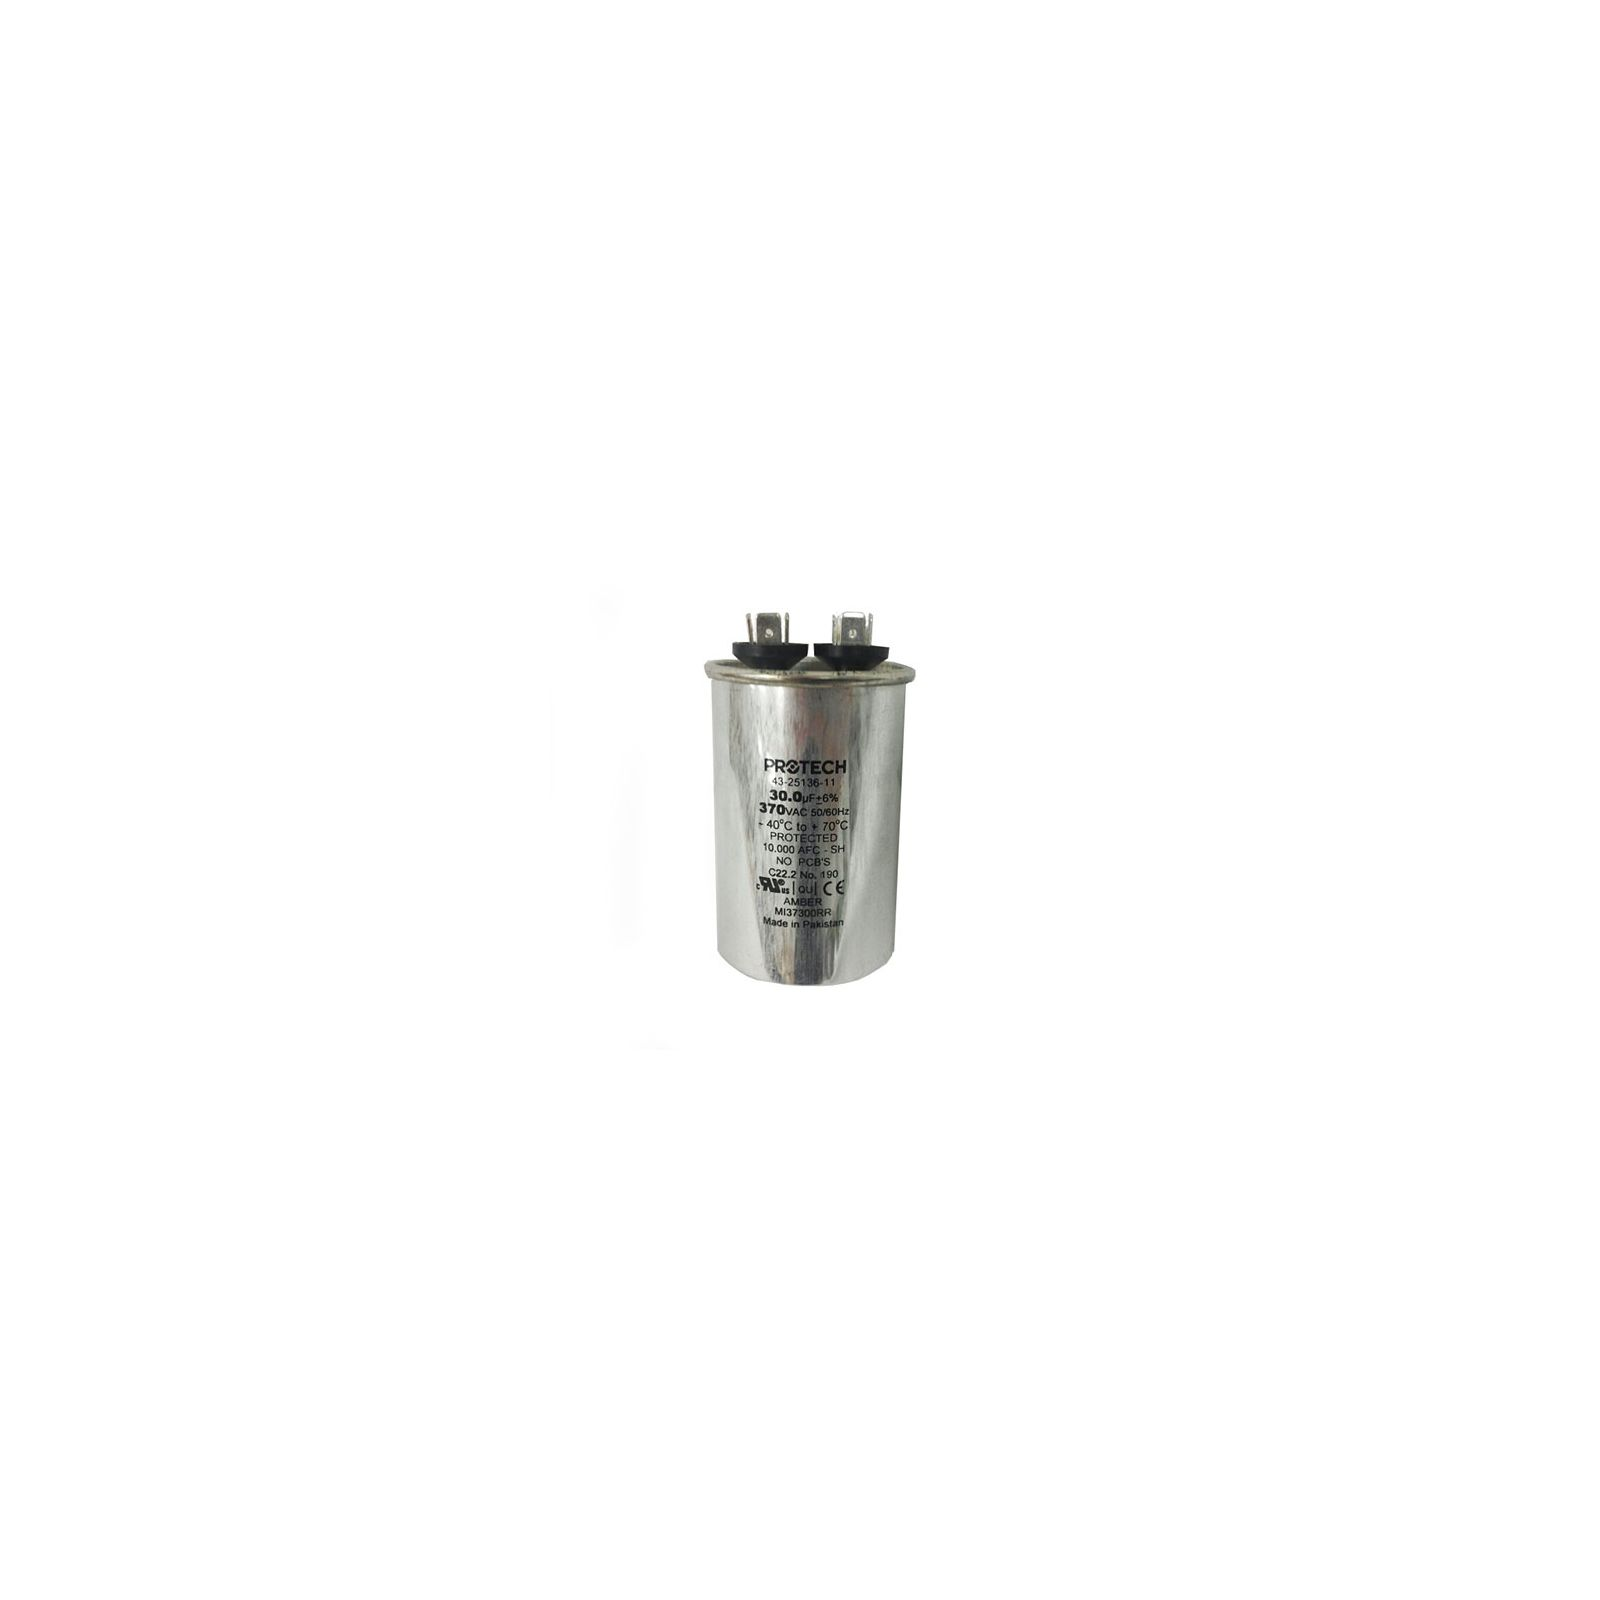 PROTECH 43-25136-11 - Capacitor - 30/370 Single Round